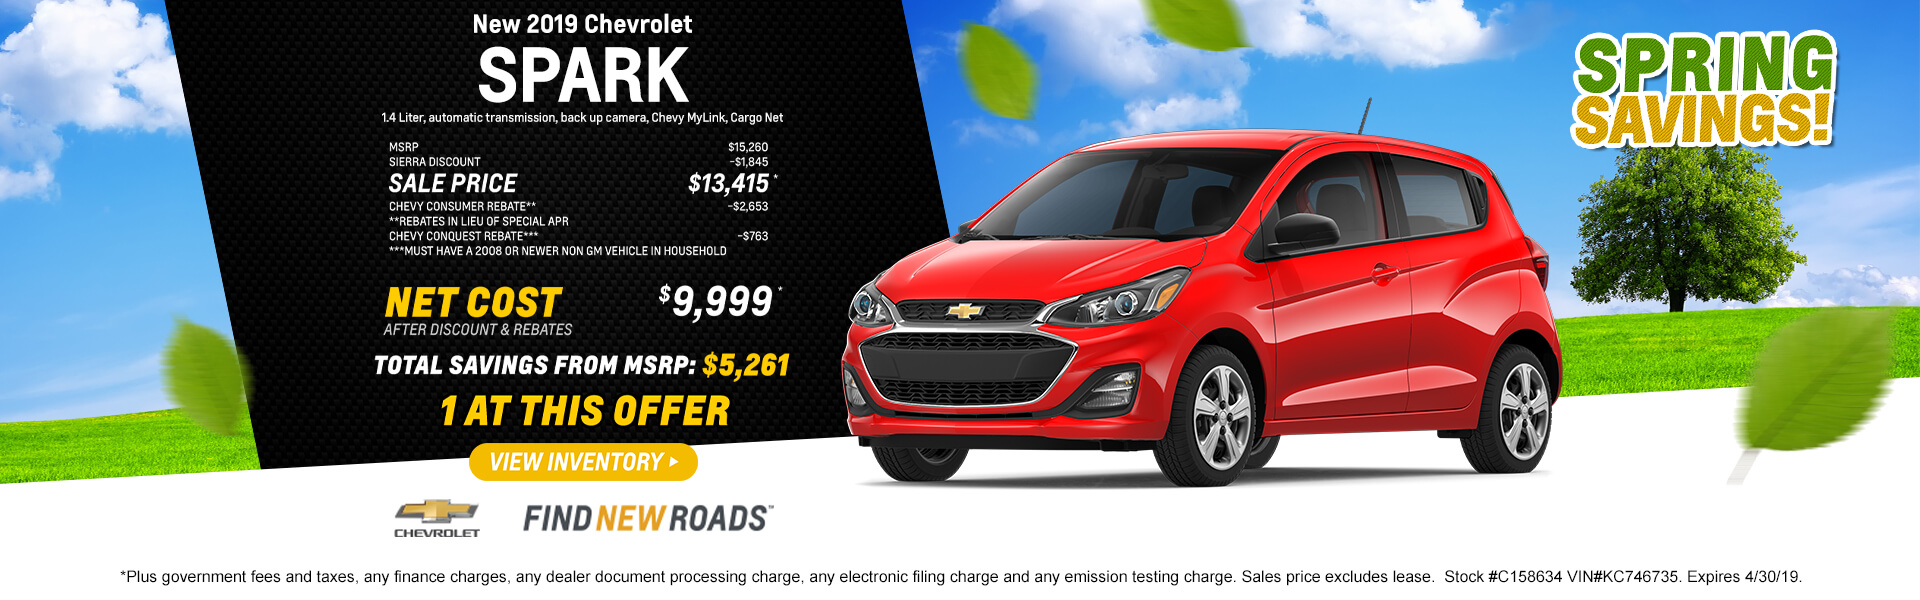 2019 Spark Hatchback $9,999 *Plus government fees and taxes, any finance charges, any dealer document processing charge, any electronic filing charge and any emission testing charge. Sales price excludes lease.  Stock #C158634 VIN#KC746735. Expires 4/30/19